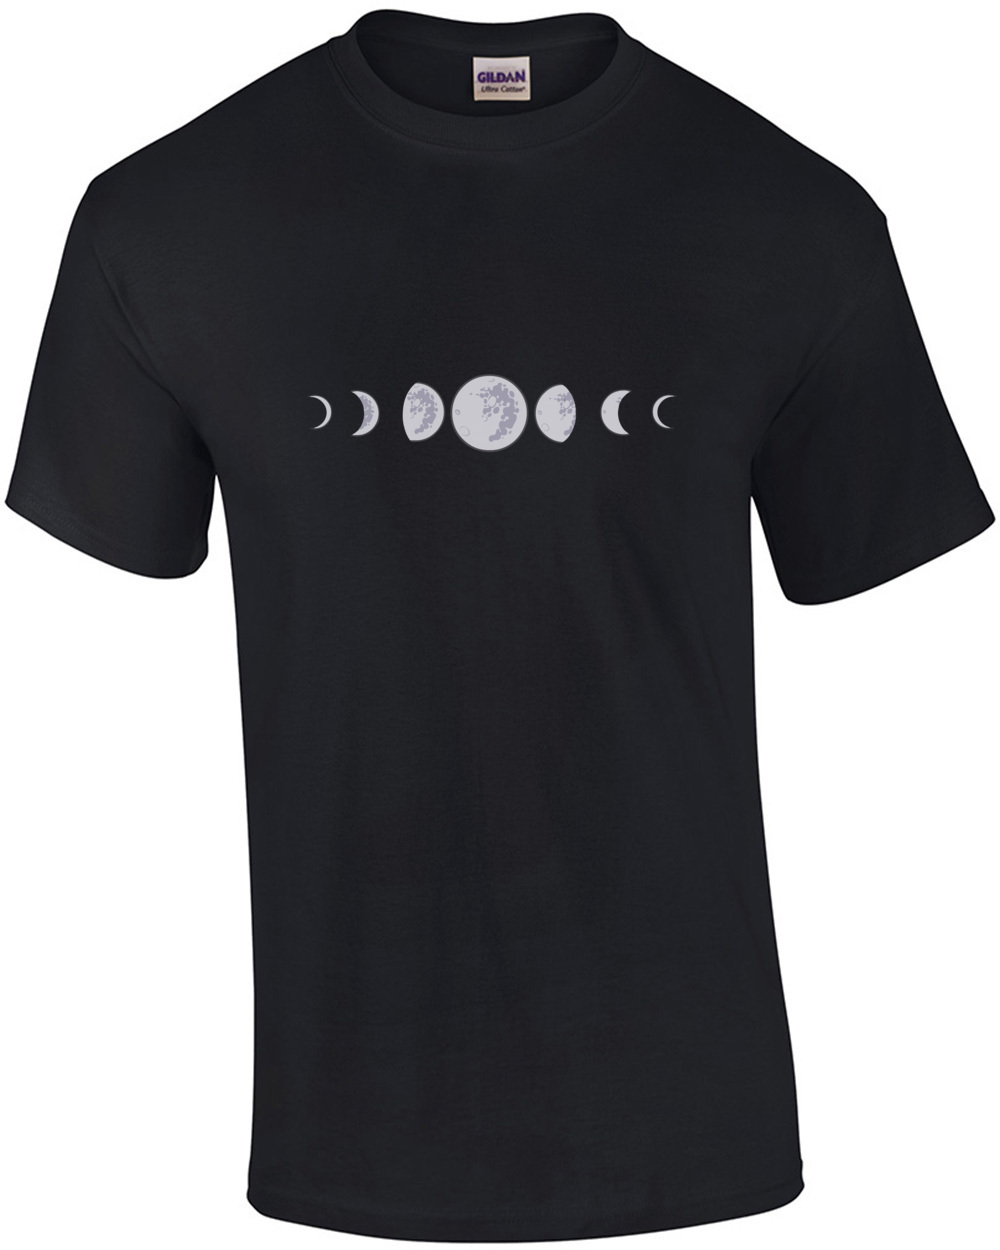 stages of moon t shirt